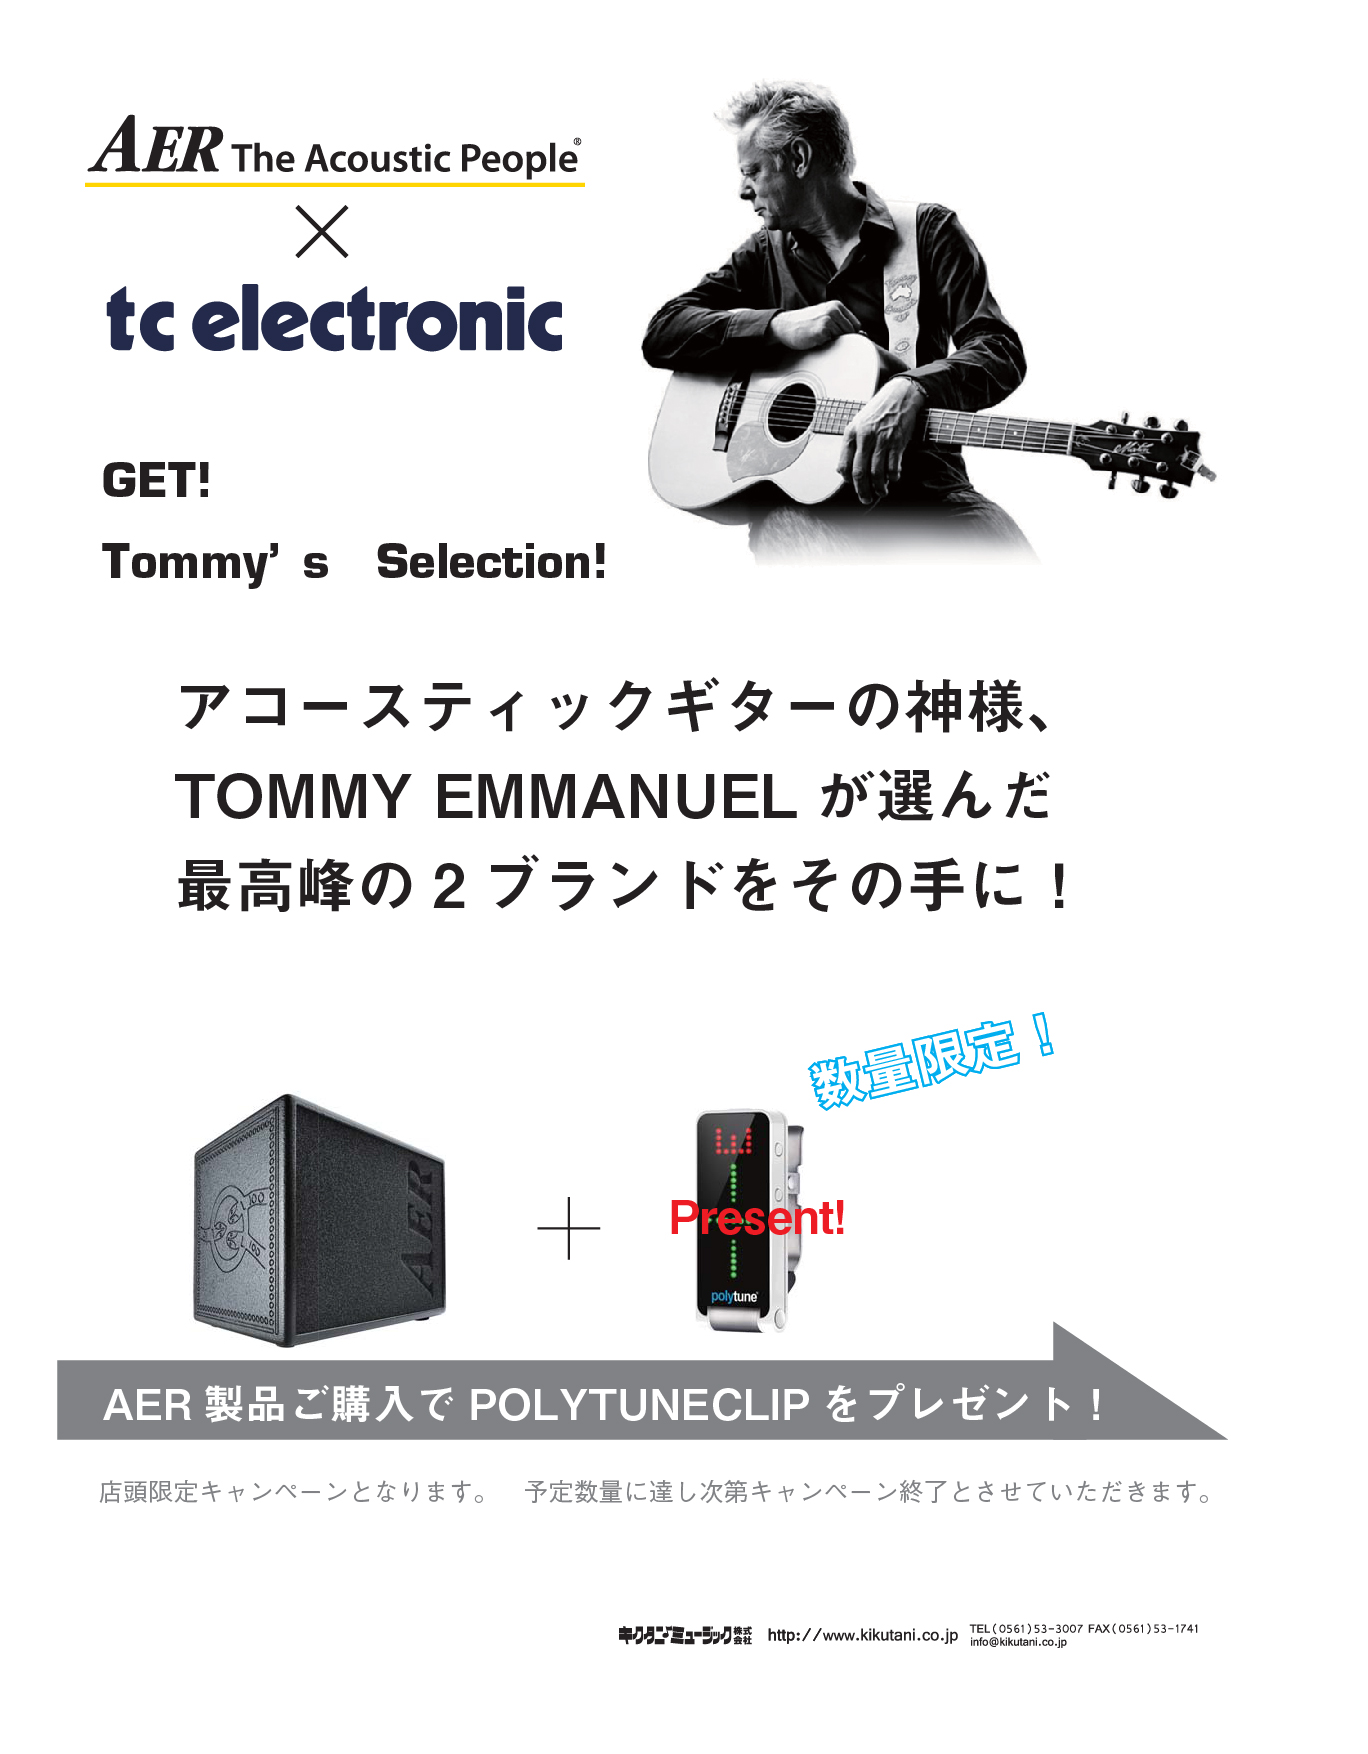 【AER x tc electronic】GET! Tommy's Selection!キャンペーン